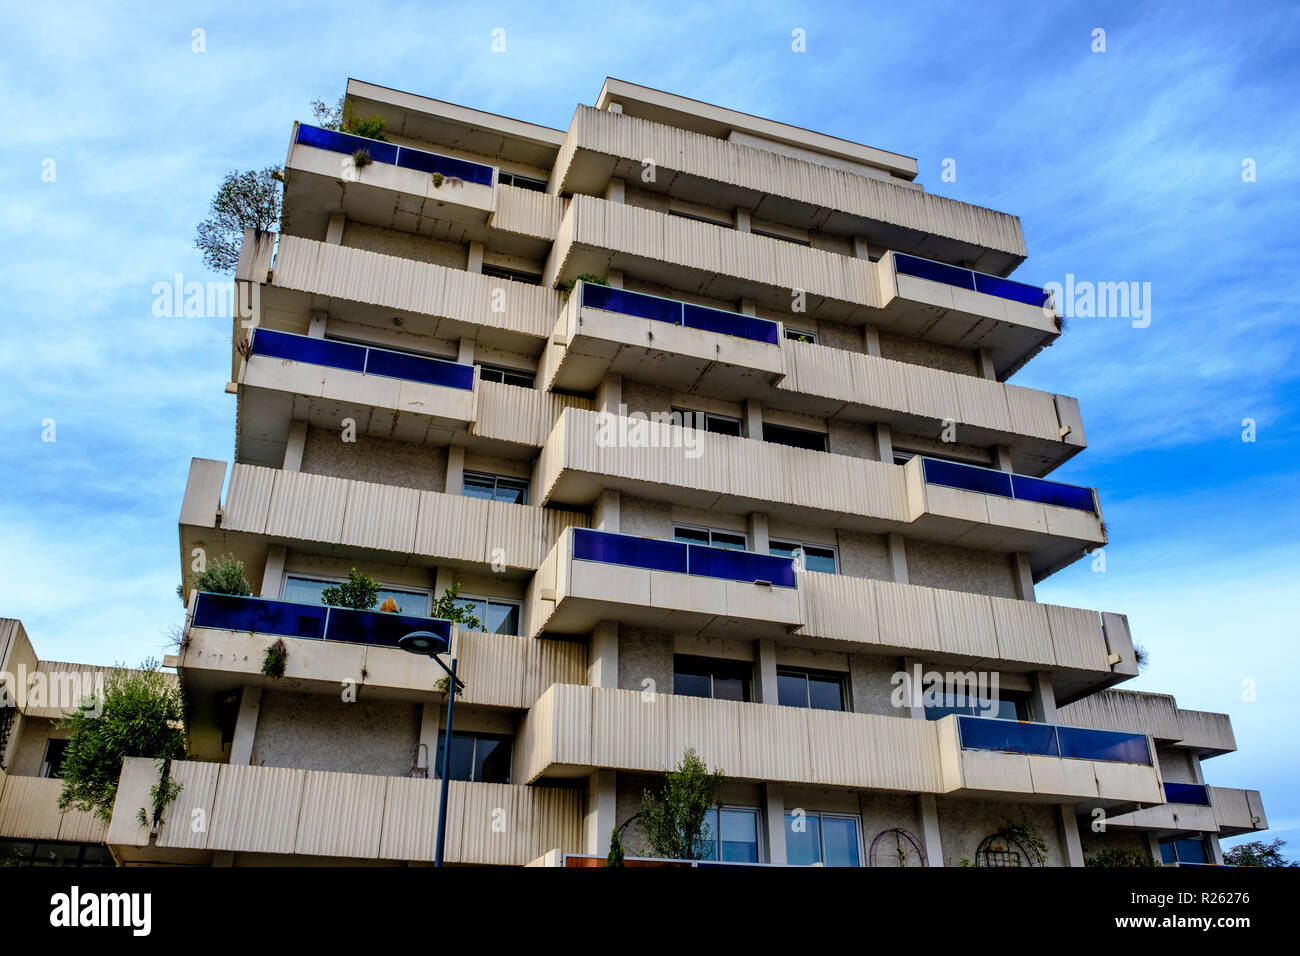 Animalerie Toulouse Modern Housing In Toulouse France Stock Photo 225097578 Alamy